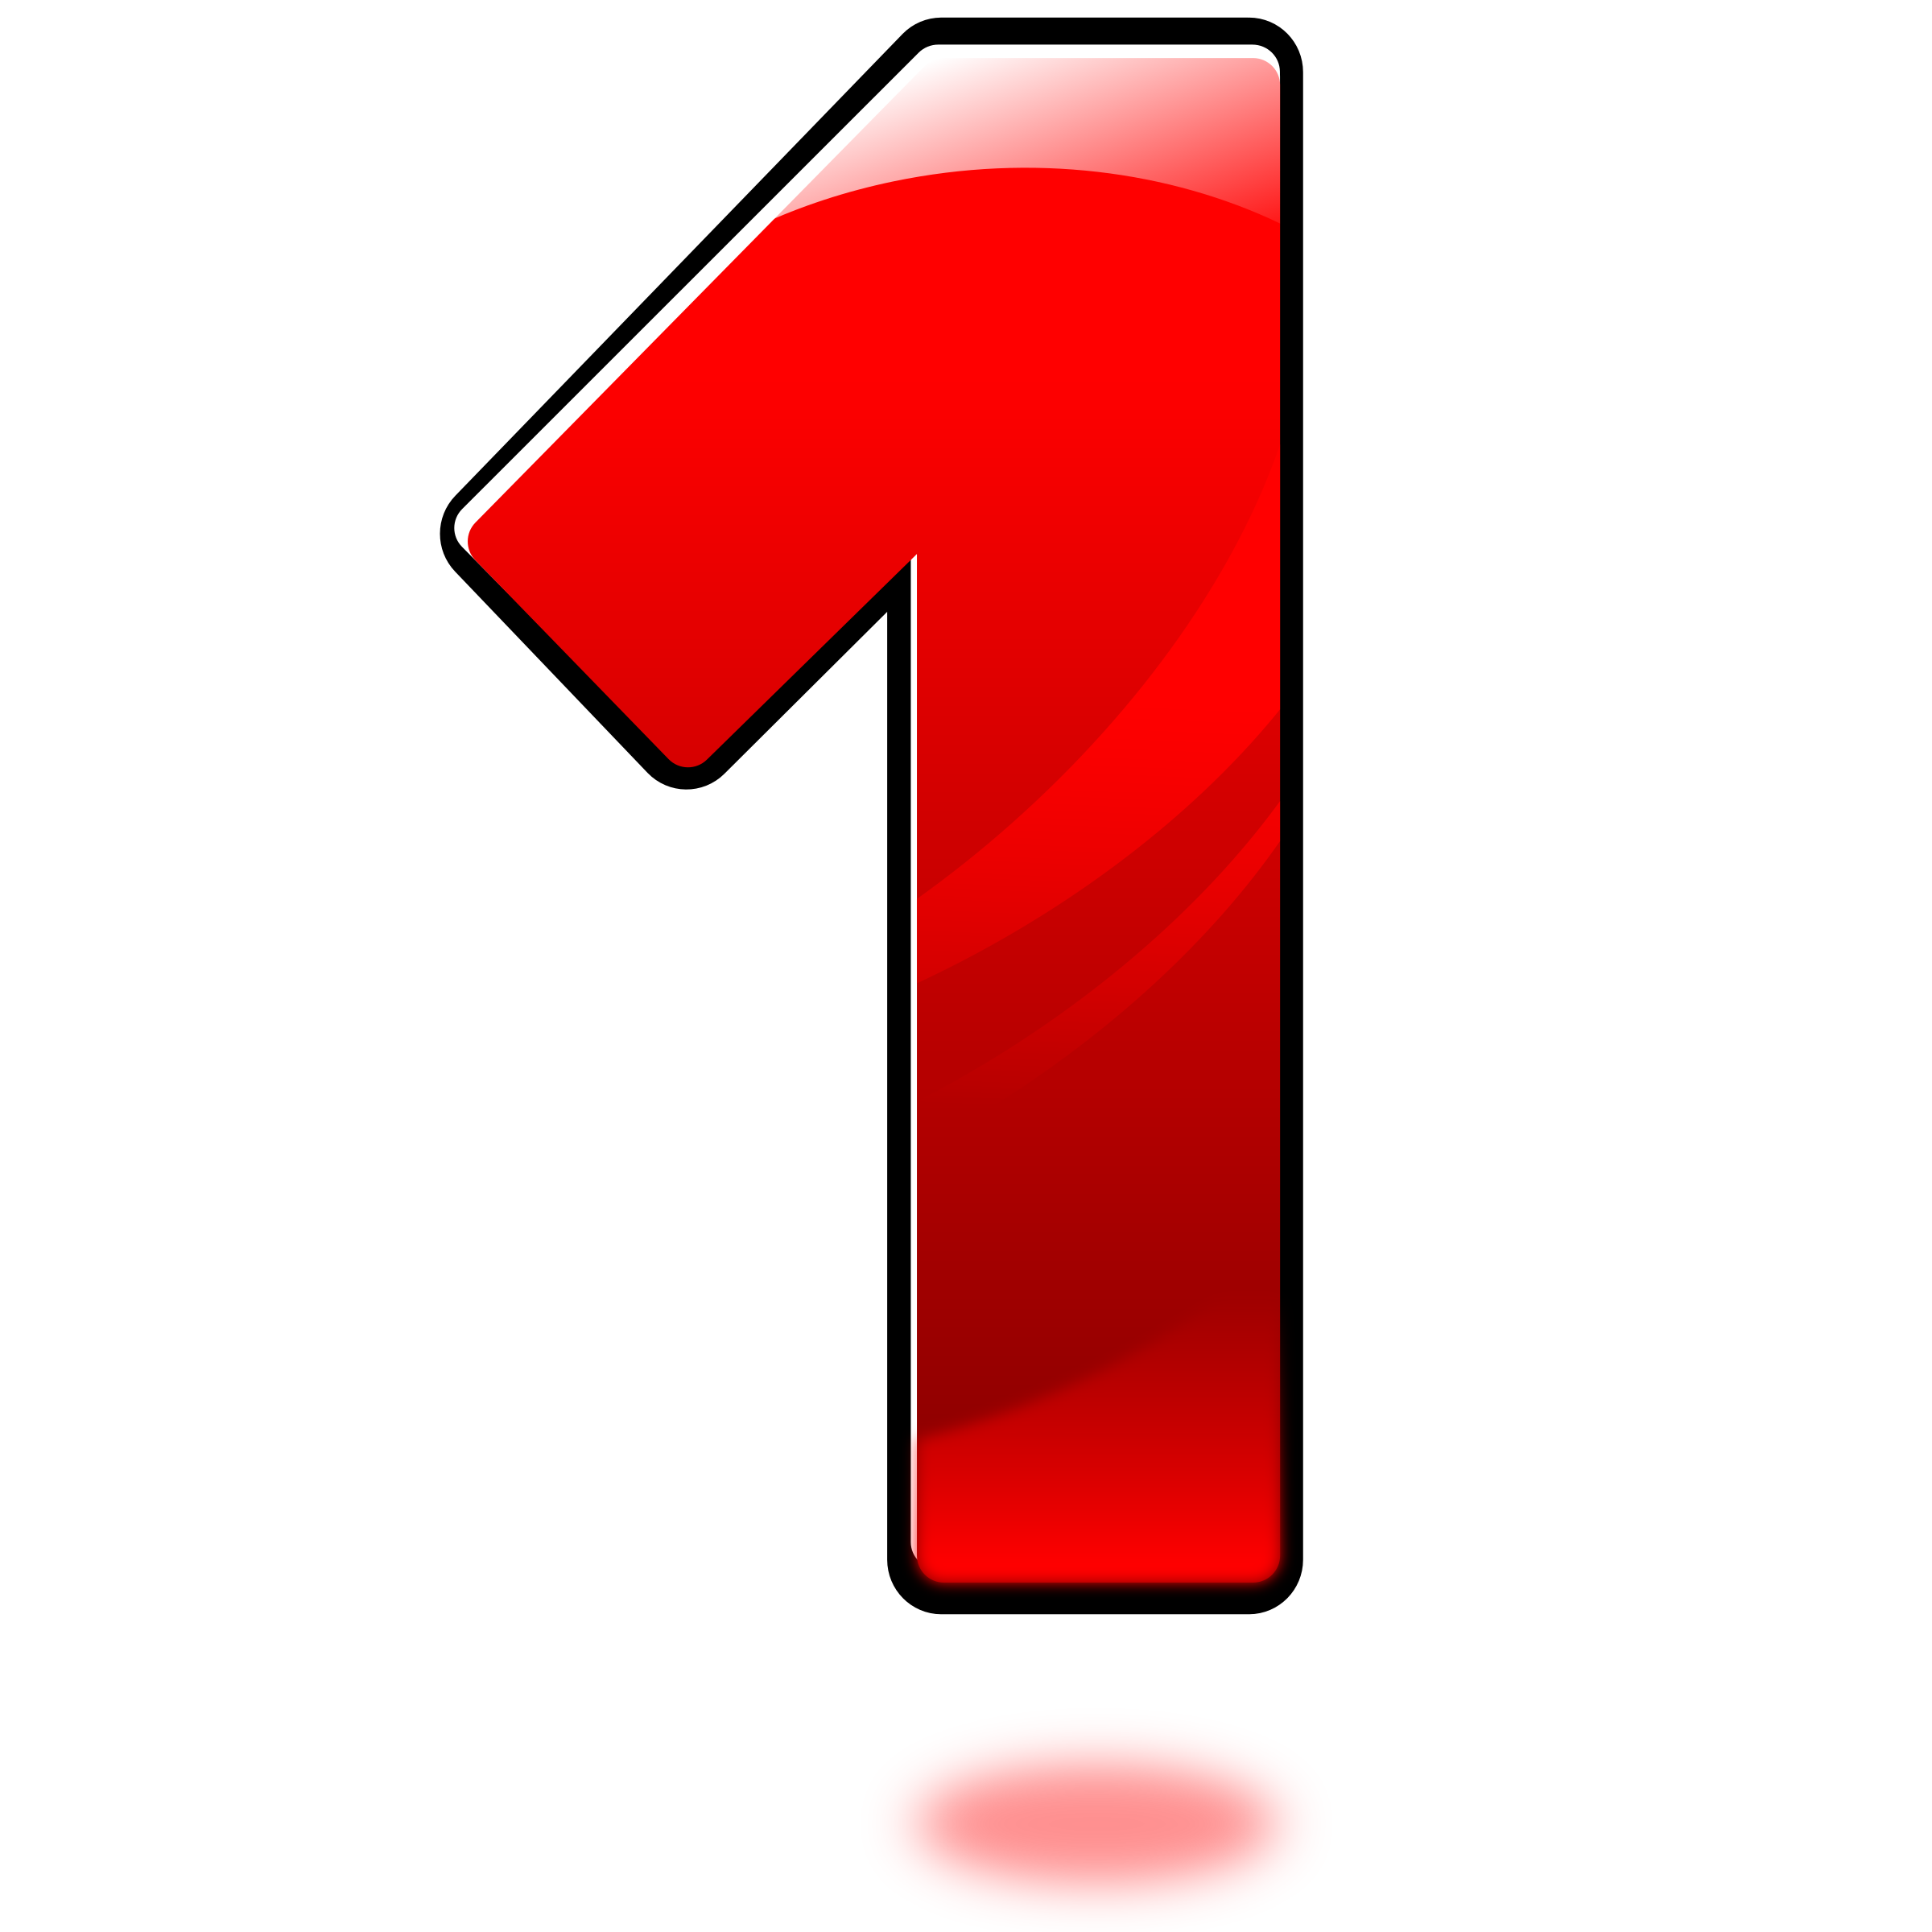 number 1 picture red color